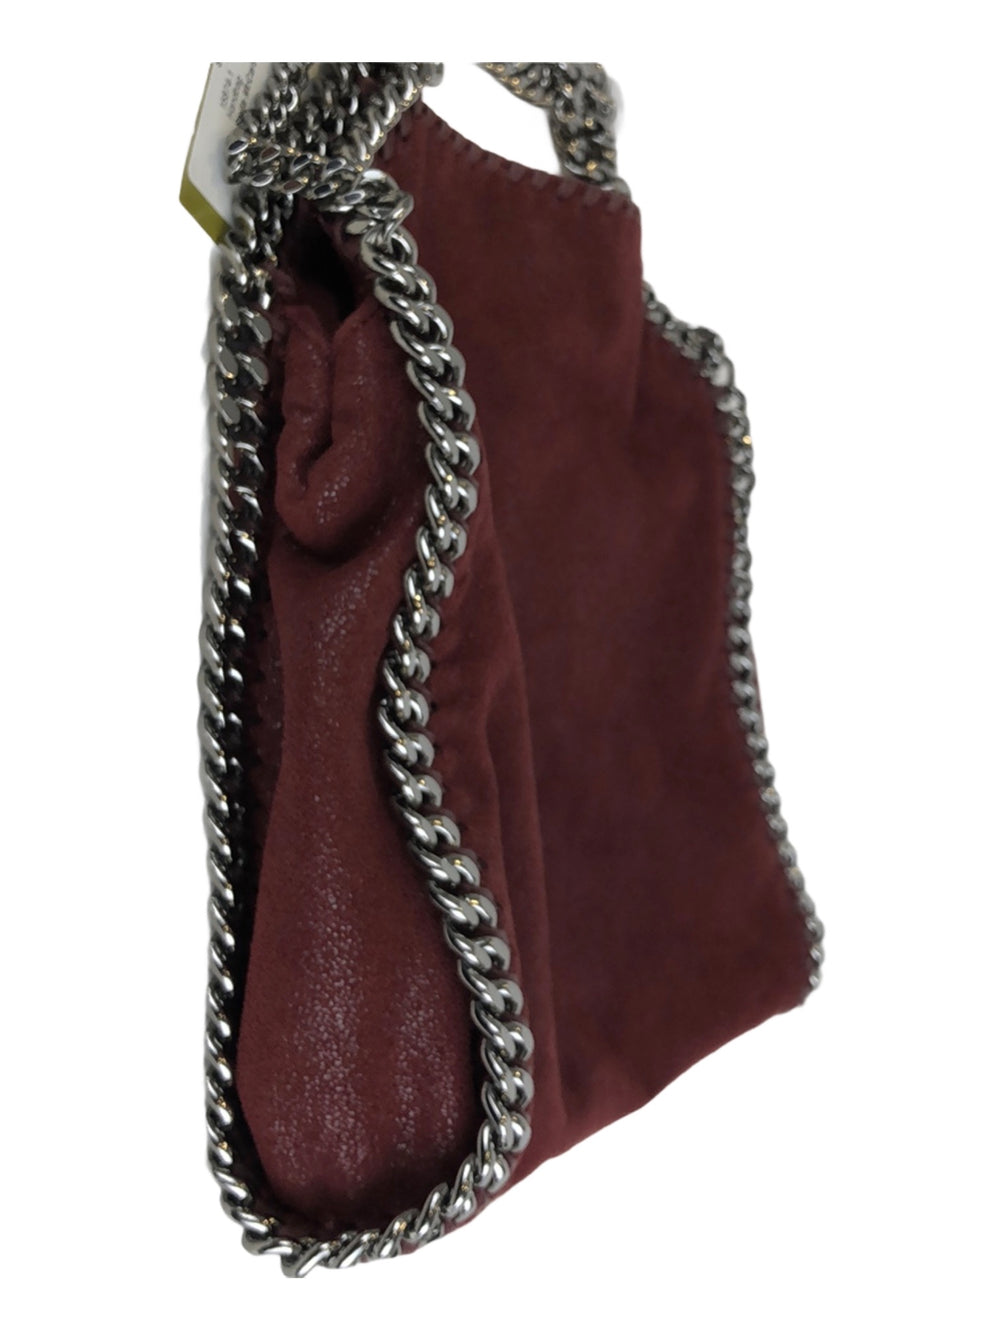 Stella McCartney Burgundy Small Faux Leather Falabella Tote - As Seen on Instagram